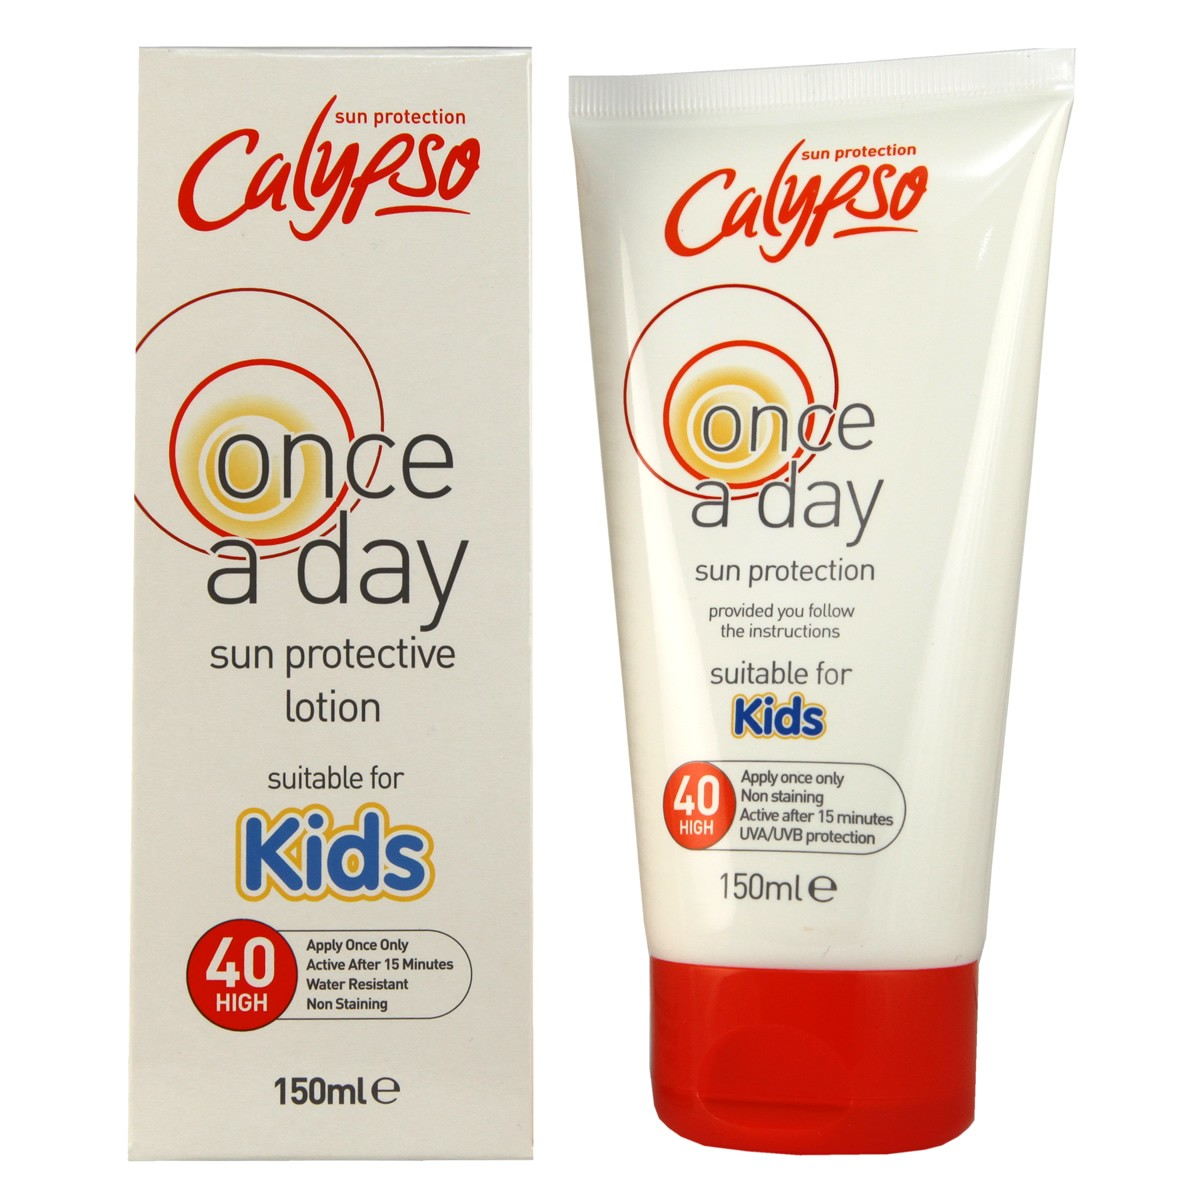 Calypso Once a Day Sun Protection SPF40 for Kids